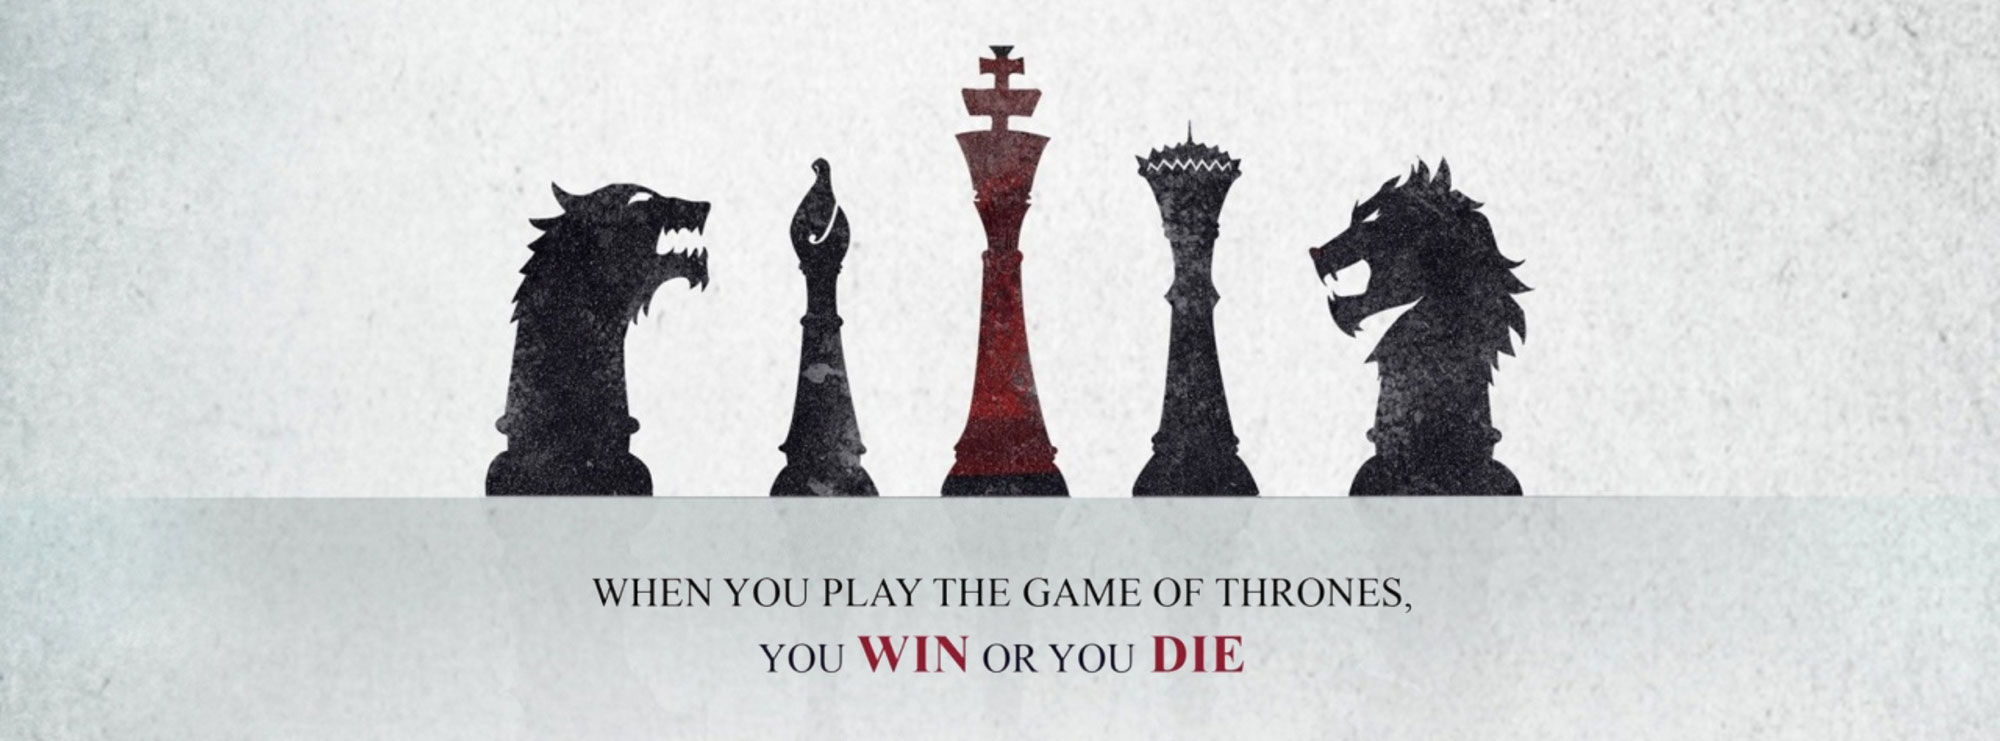 When you play the Game of thrones you win or you Die